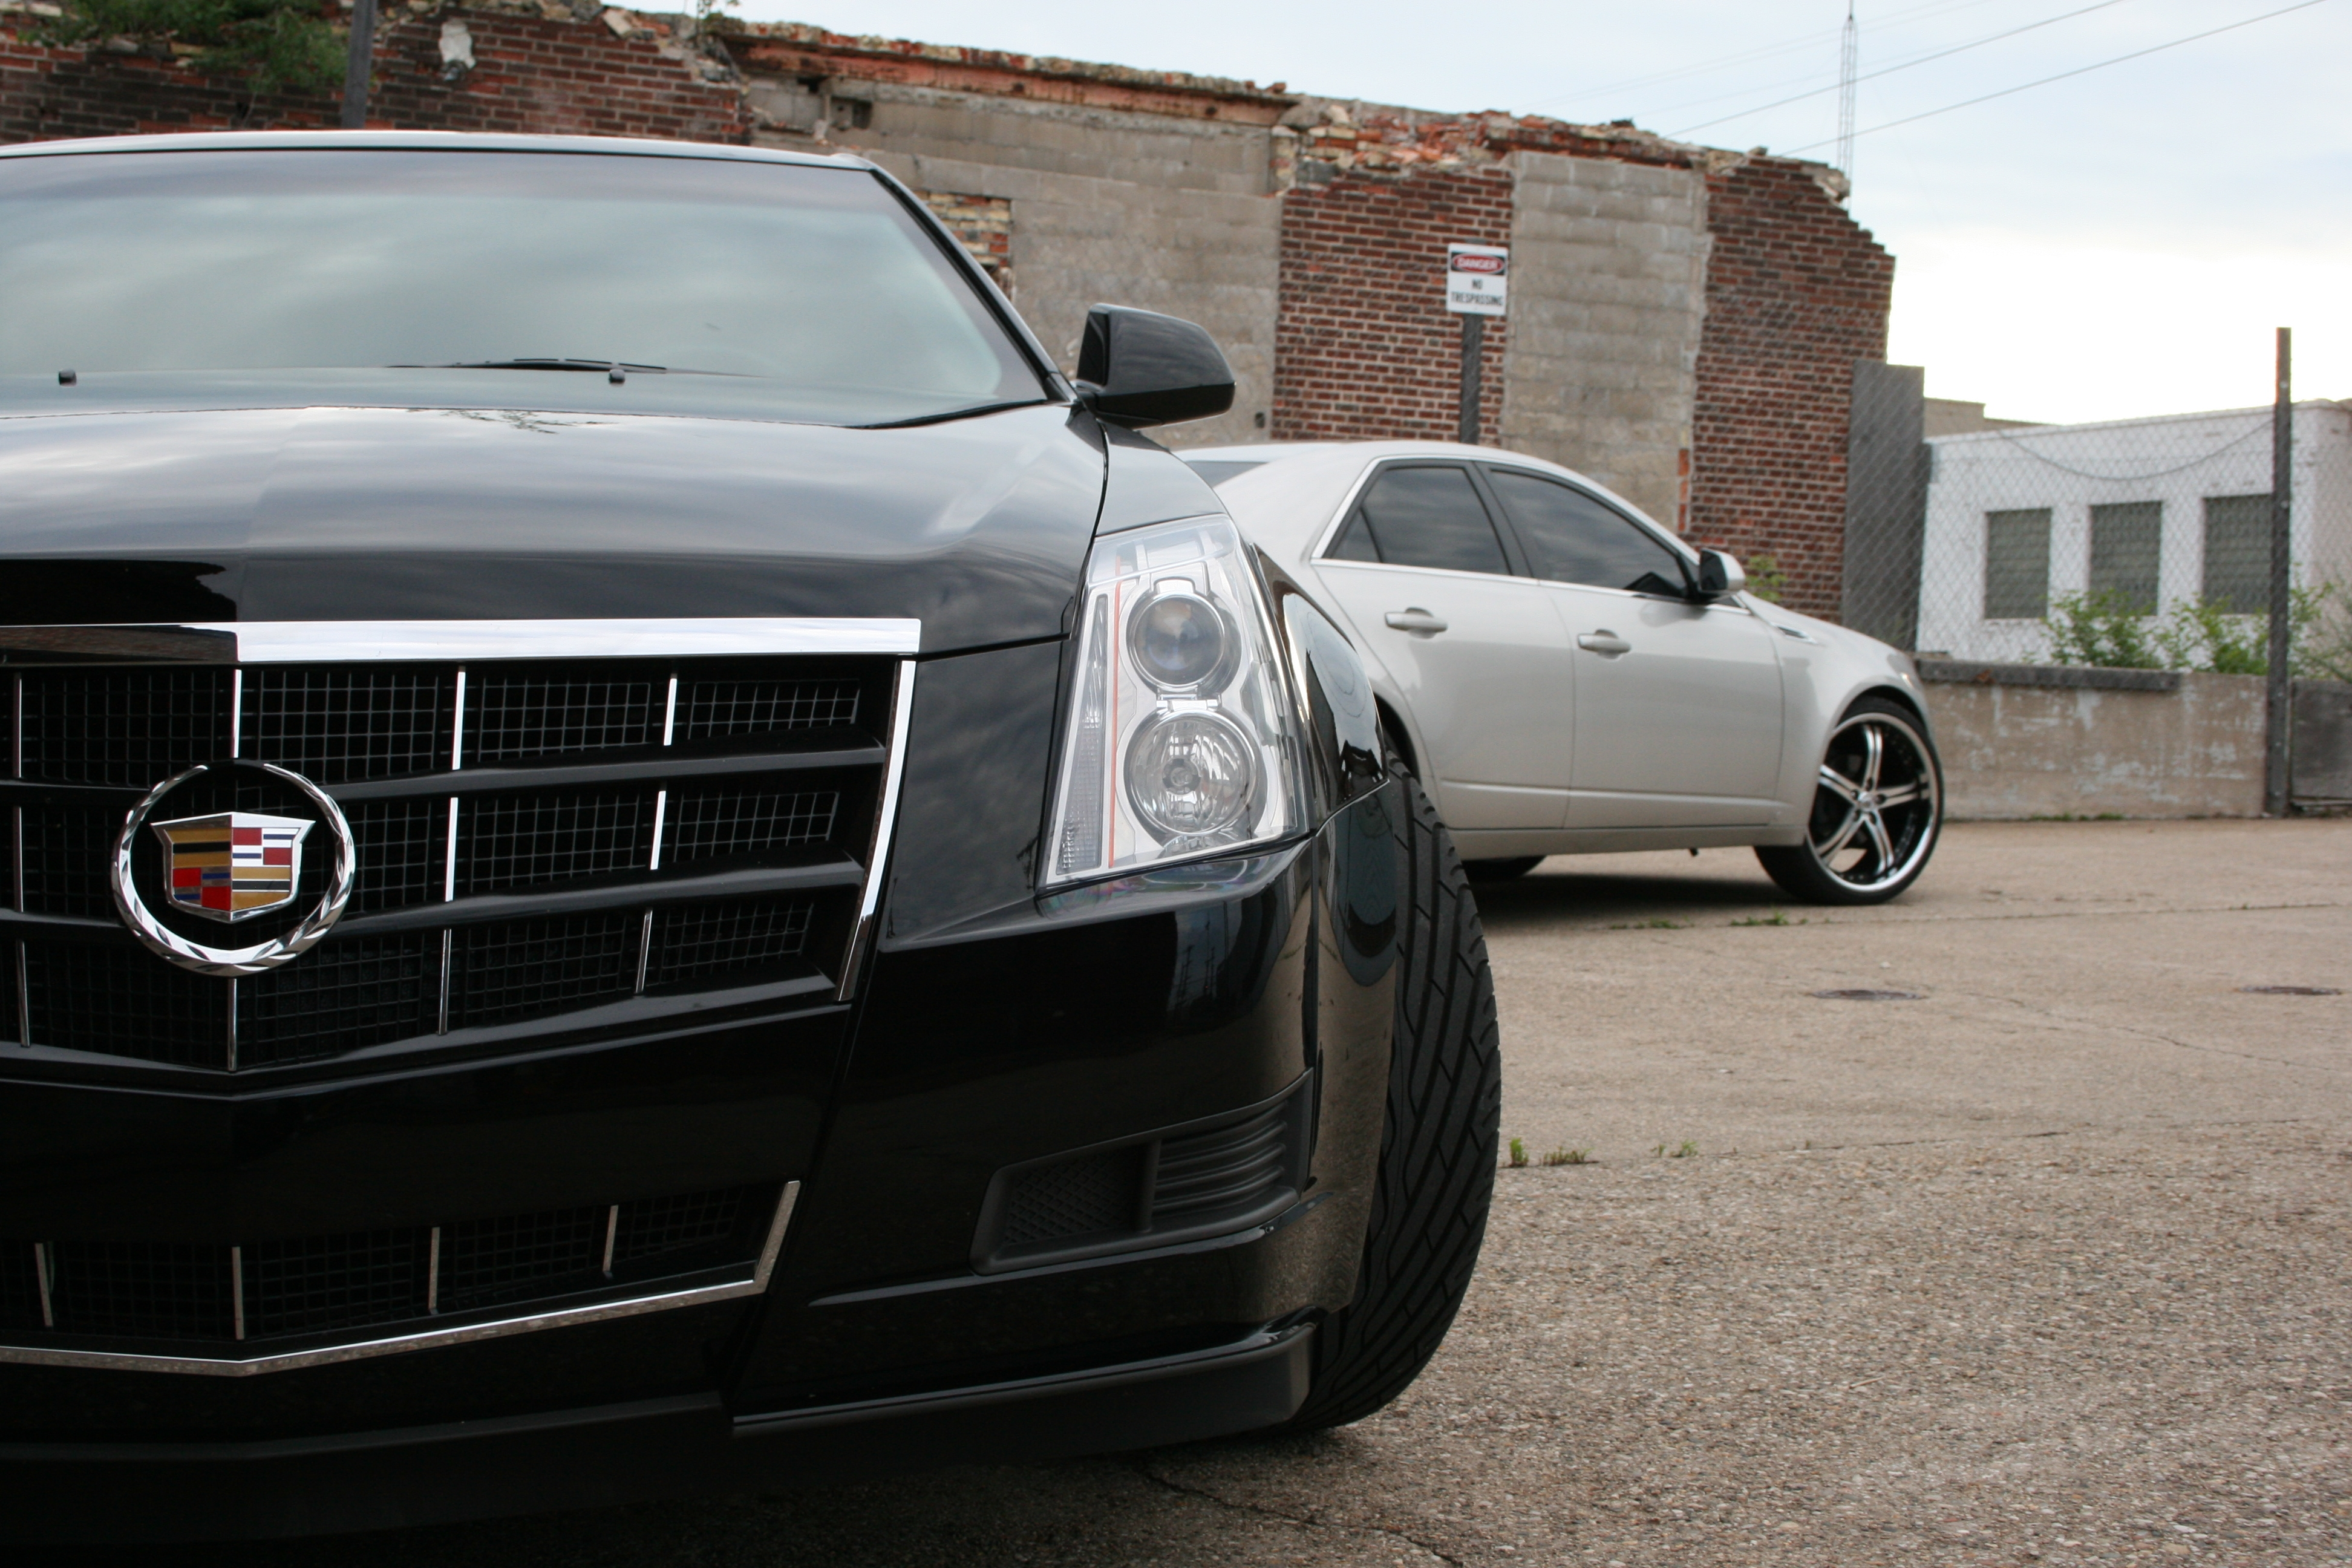 dkmgsxr 2010 cadillac cts specs photos modification info at cardomain. Black Bedroom Furniture Sets. Home Design Ideas